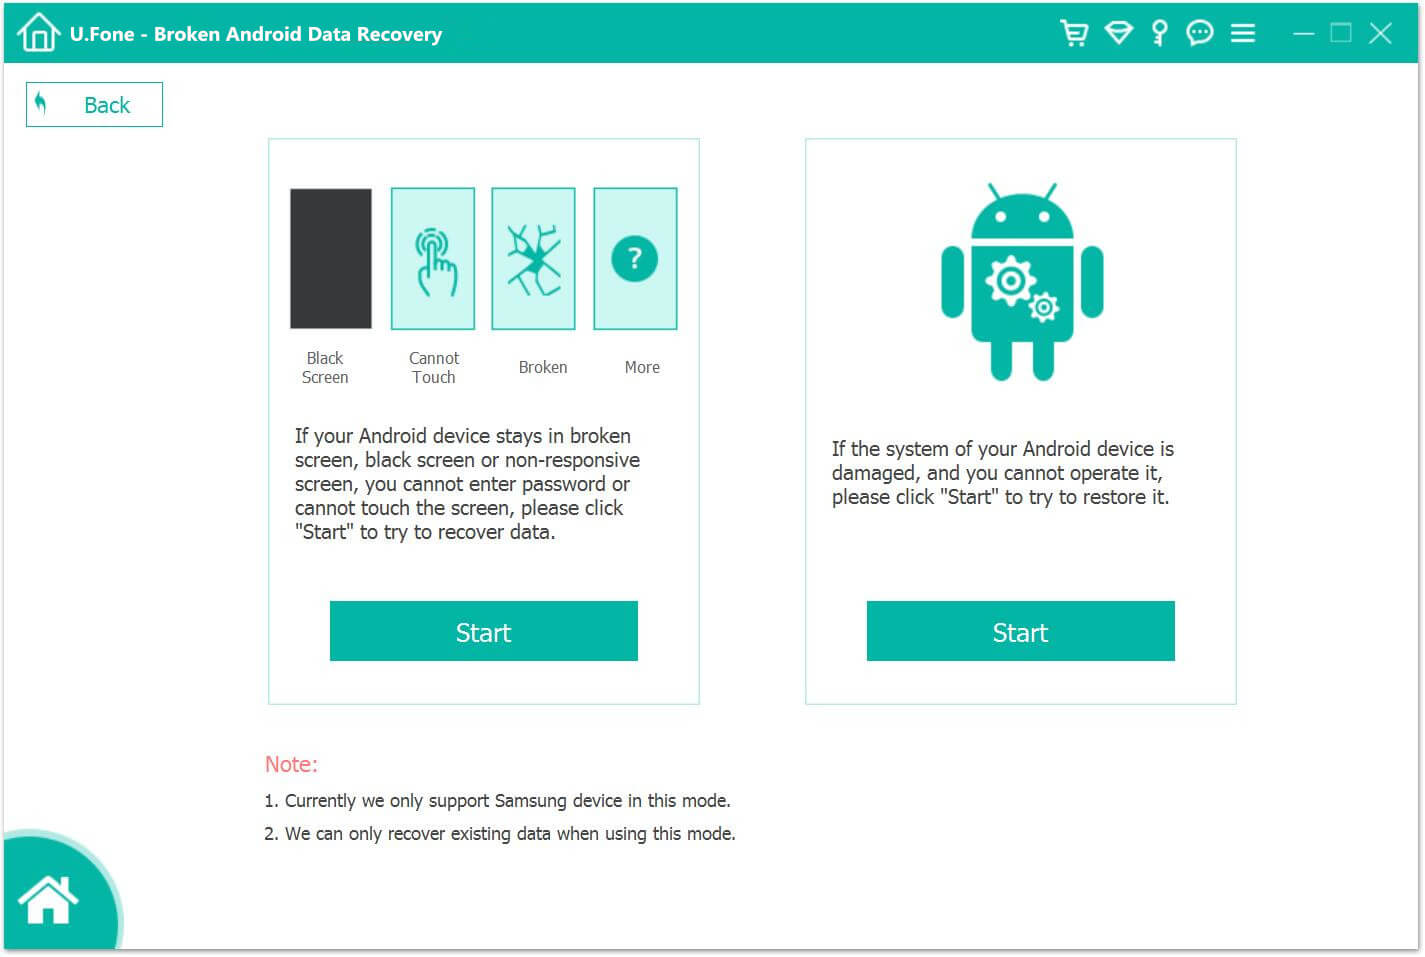 Broken Android Data Recovery